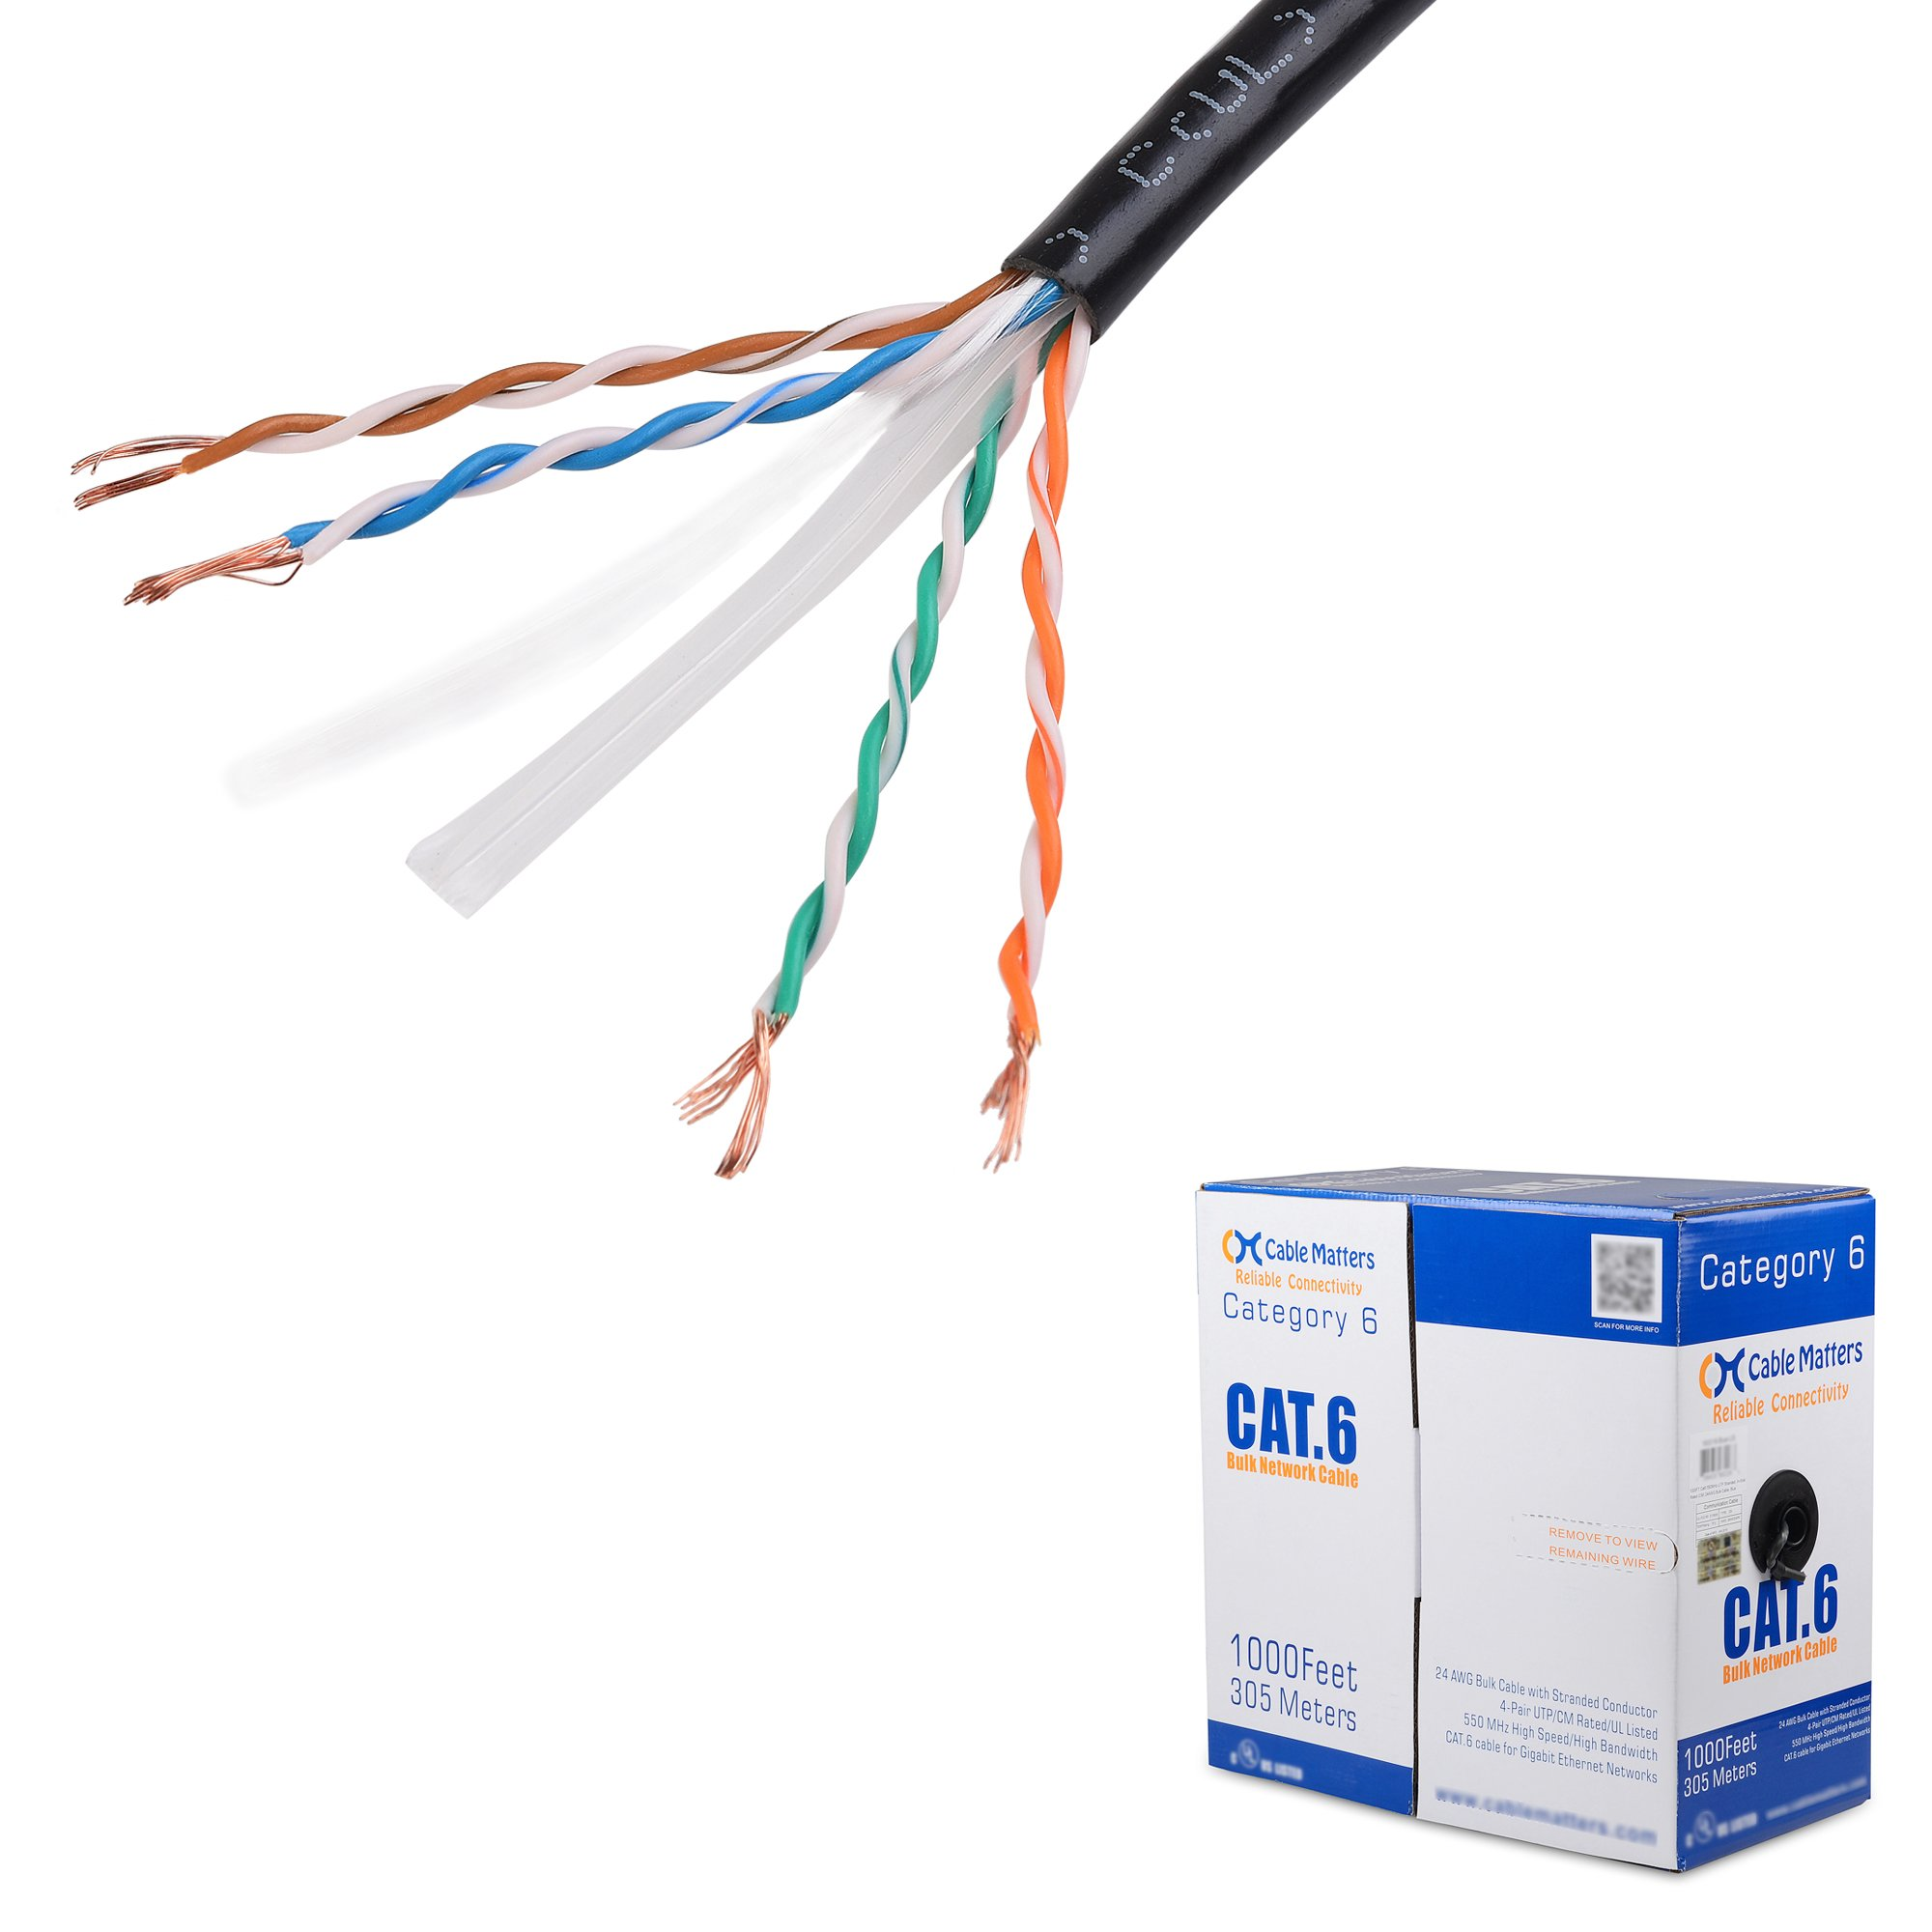 [UL Listed] Cable Matters In-Wall Rated (CM) Cat6 Stranded Bulk Ethernet Cable in Black 1000 Feet by Cable Matters